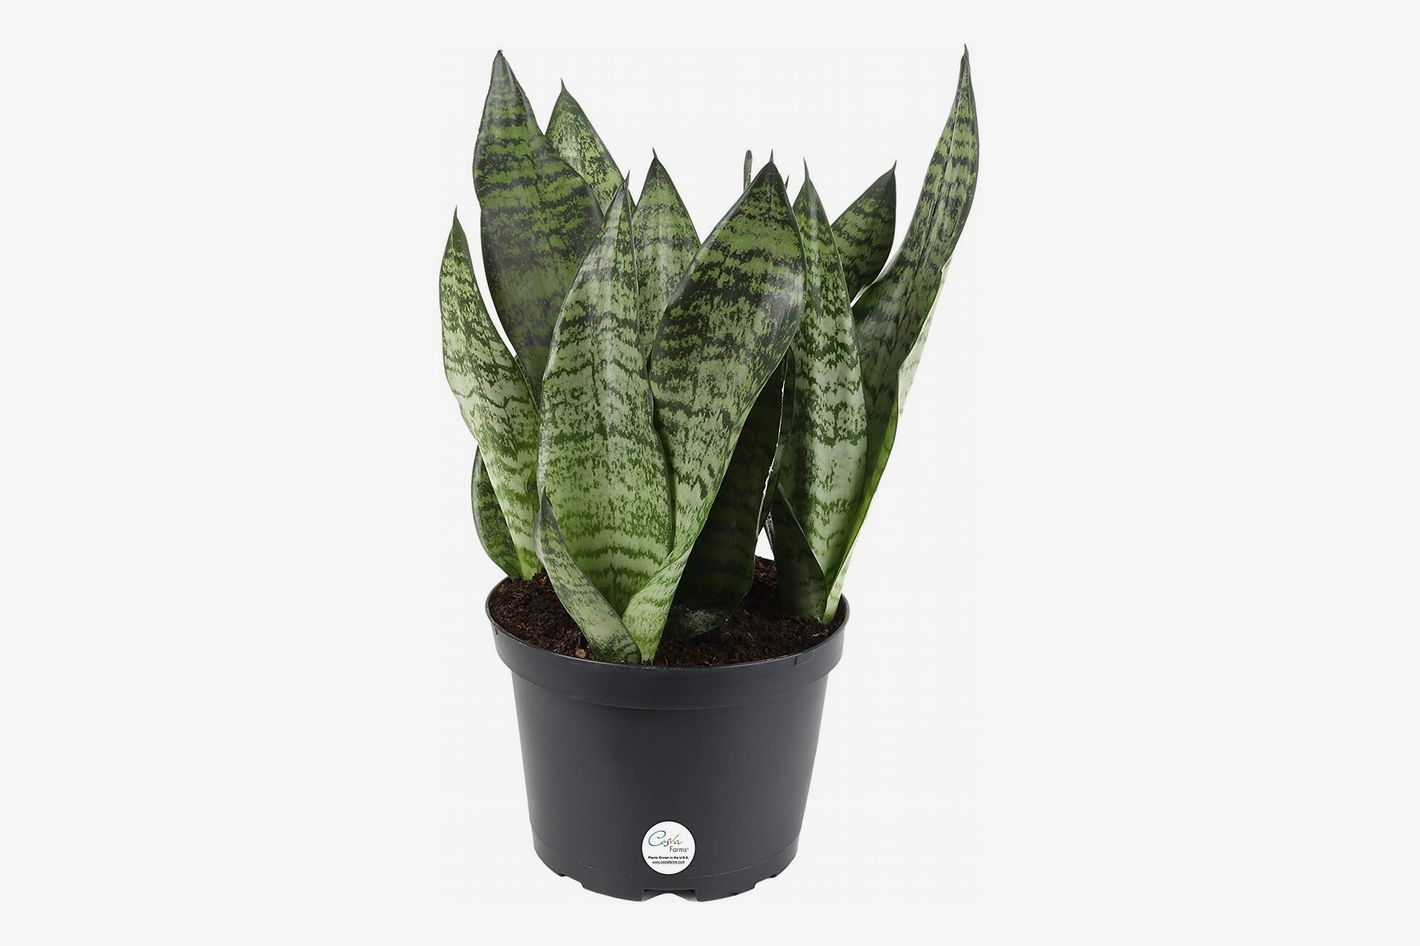 The 6 Best Plants for Cubicles, According to Plant Experts Green Vine Indoor House Plant Html on flowering vine house plants, decorative vine house plants, indoor glass plants, green vine house plants,